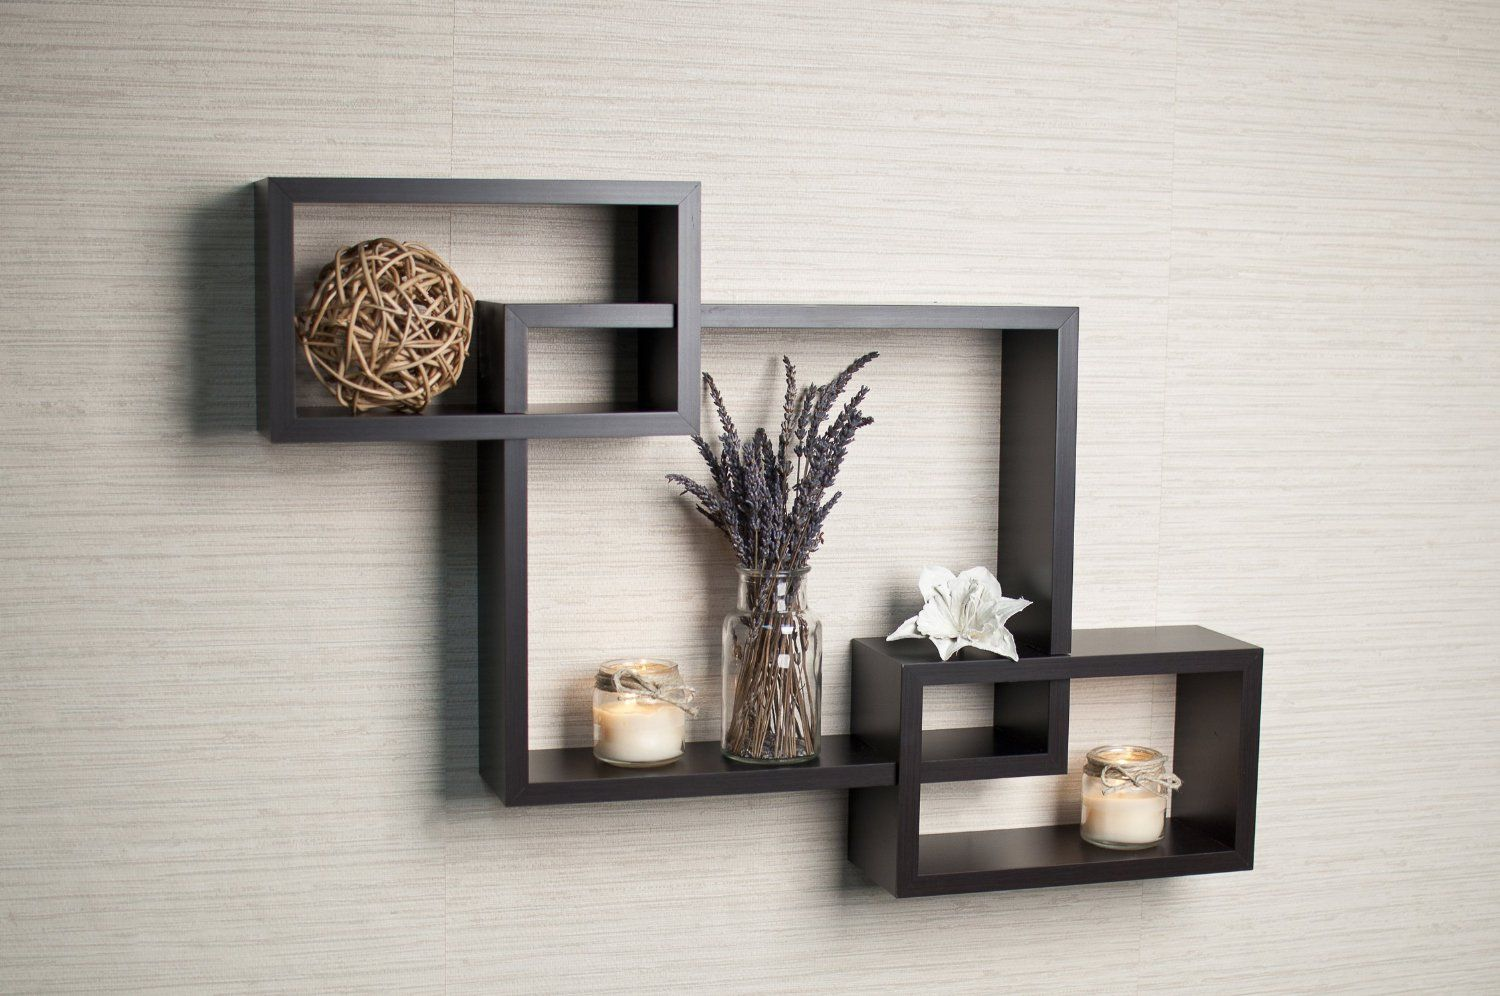 Danya B Intersecting Boxes Espresso Color Wall Shelf Insider S Special Review You Can T Miss Read Wall Shelf Decor Modern Wall Shelf Wall Shelves Design